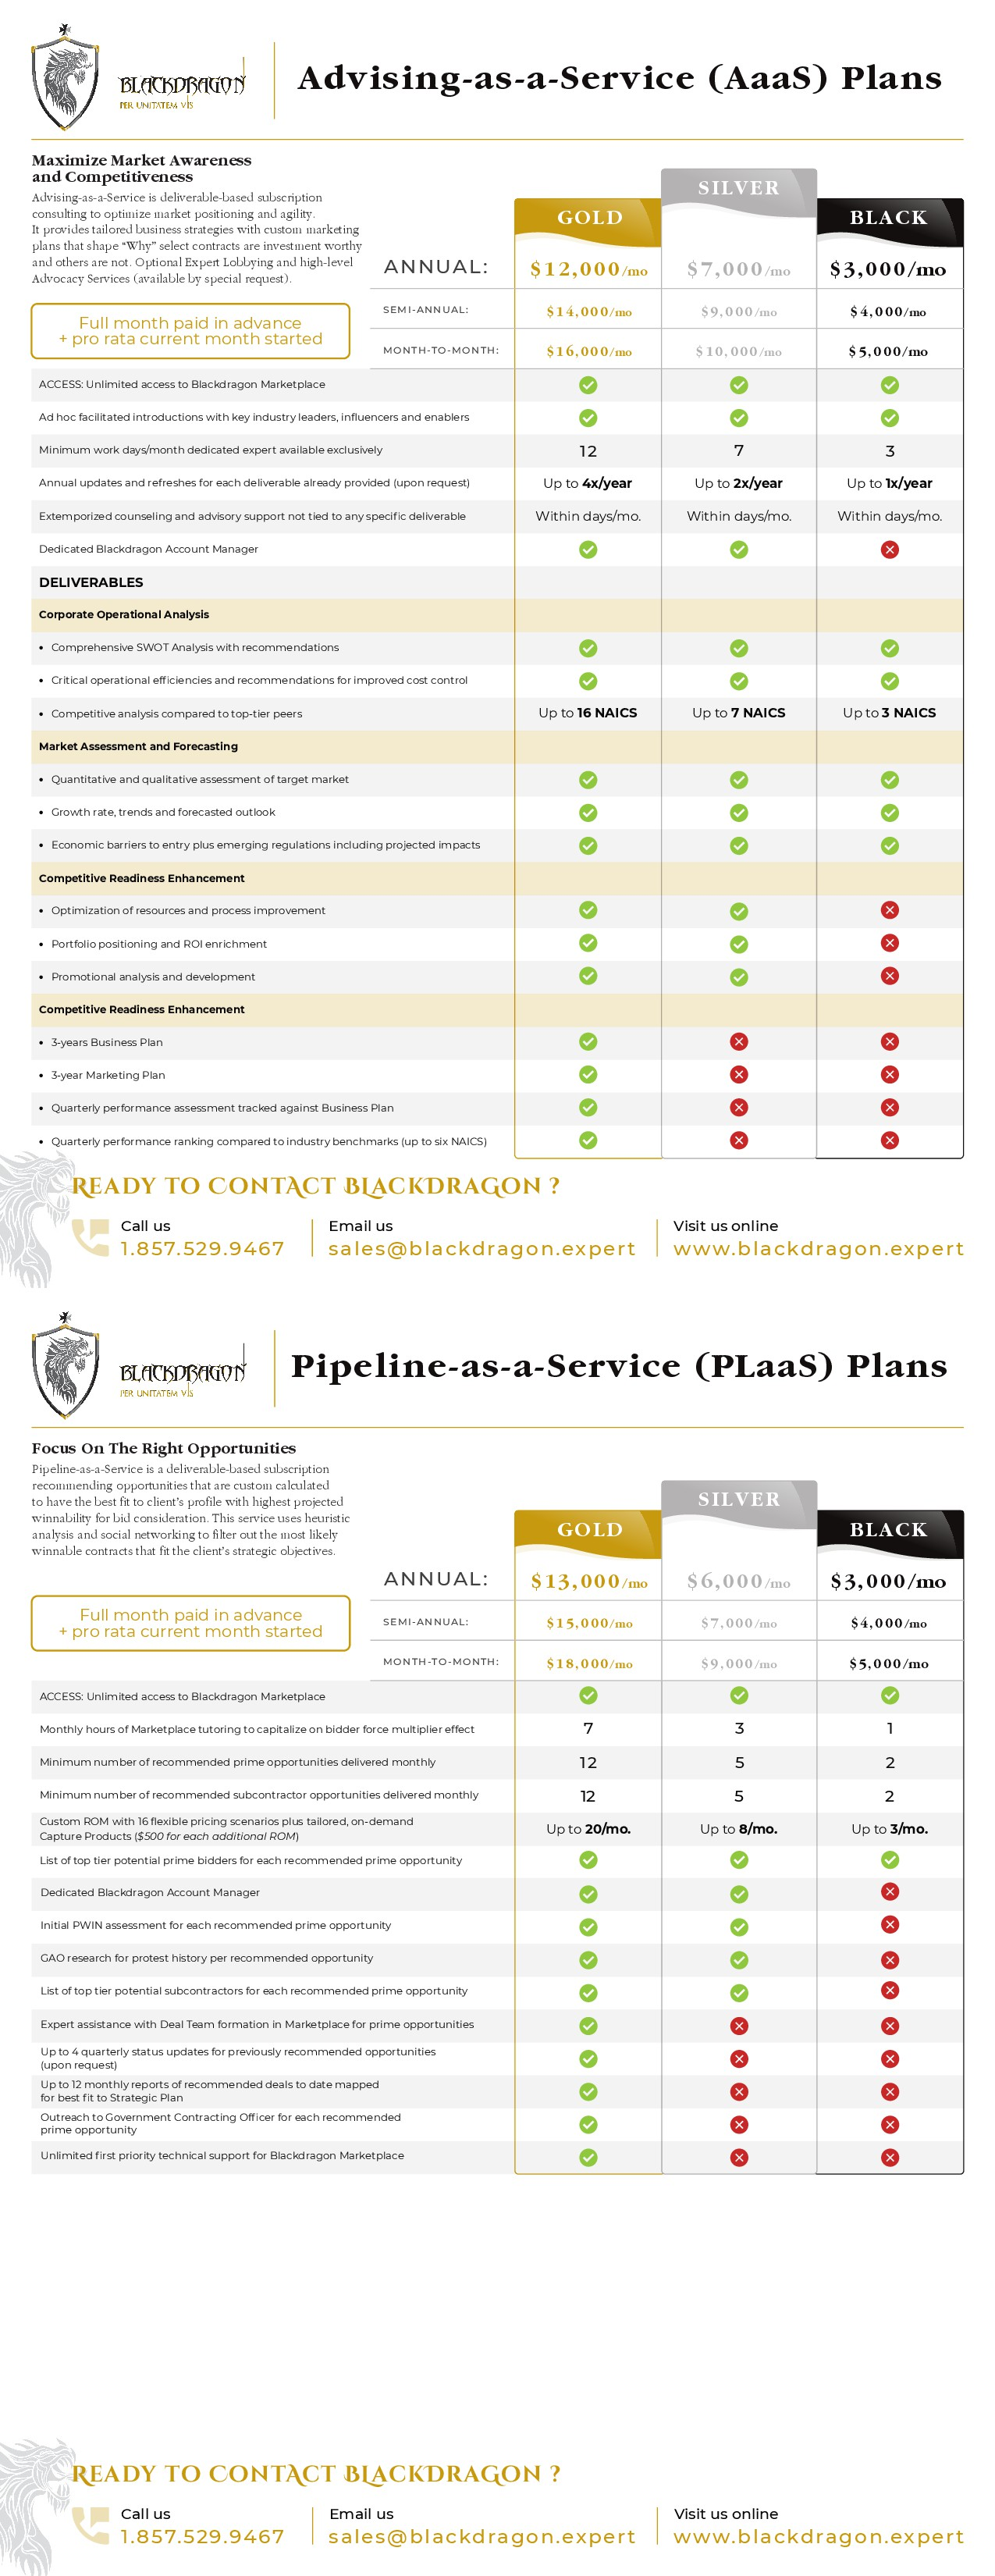 Design Pricing Sheet For Major Disruptor Company Revolutionizing the Federal Contracting Industry